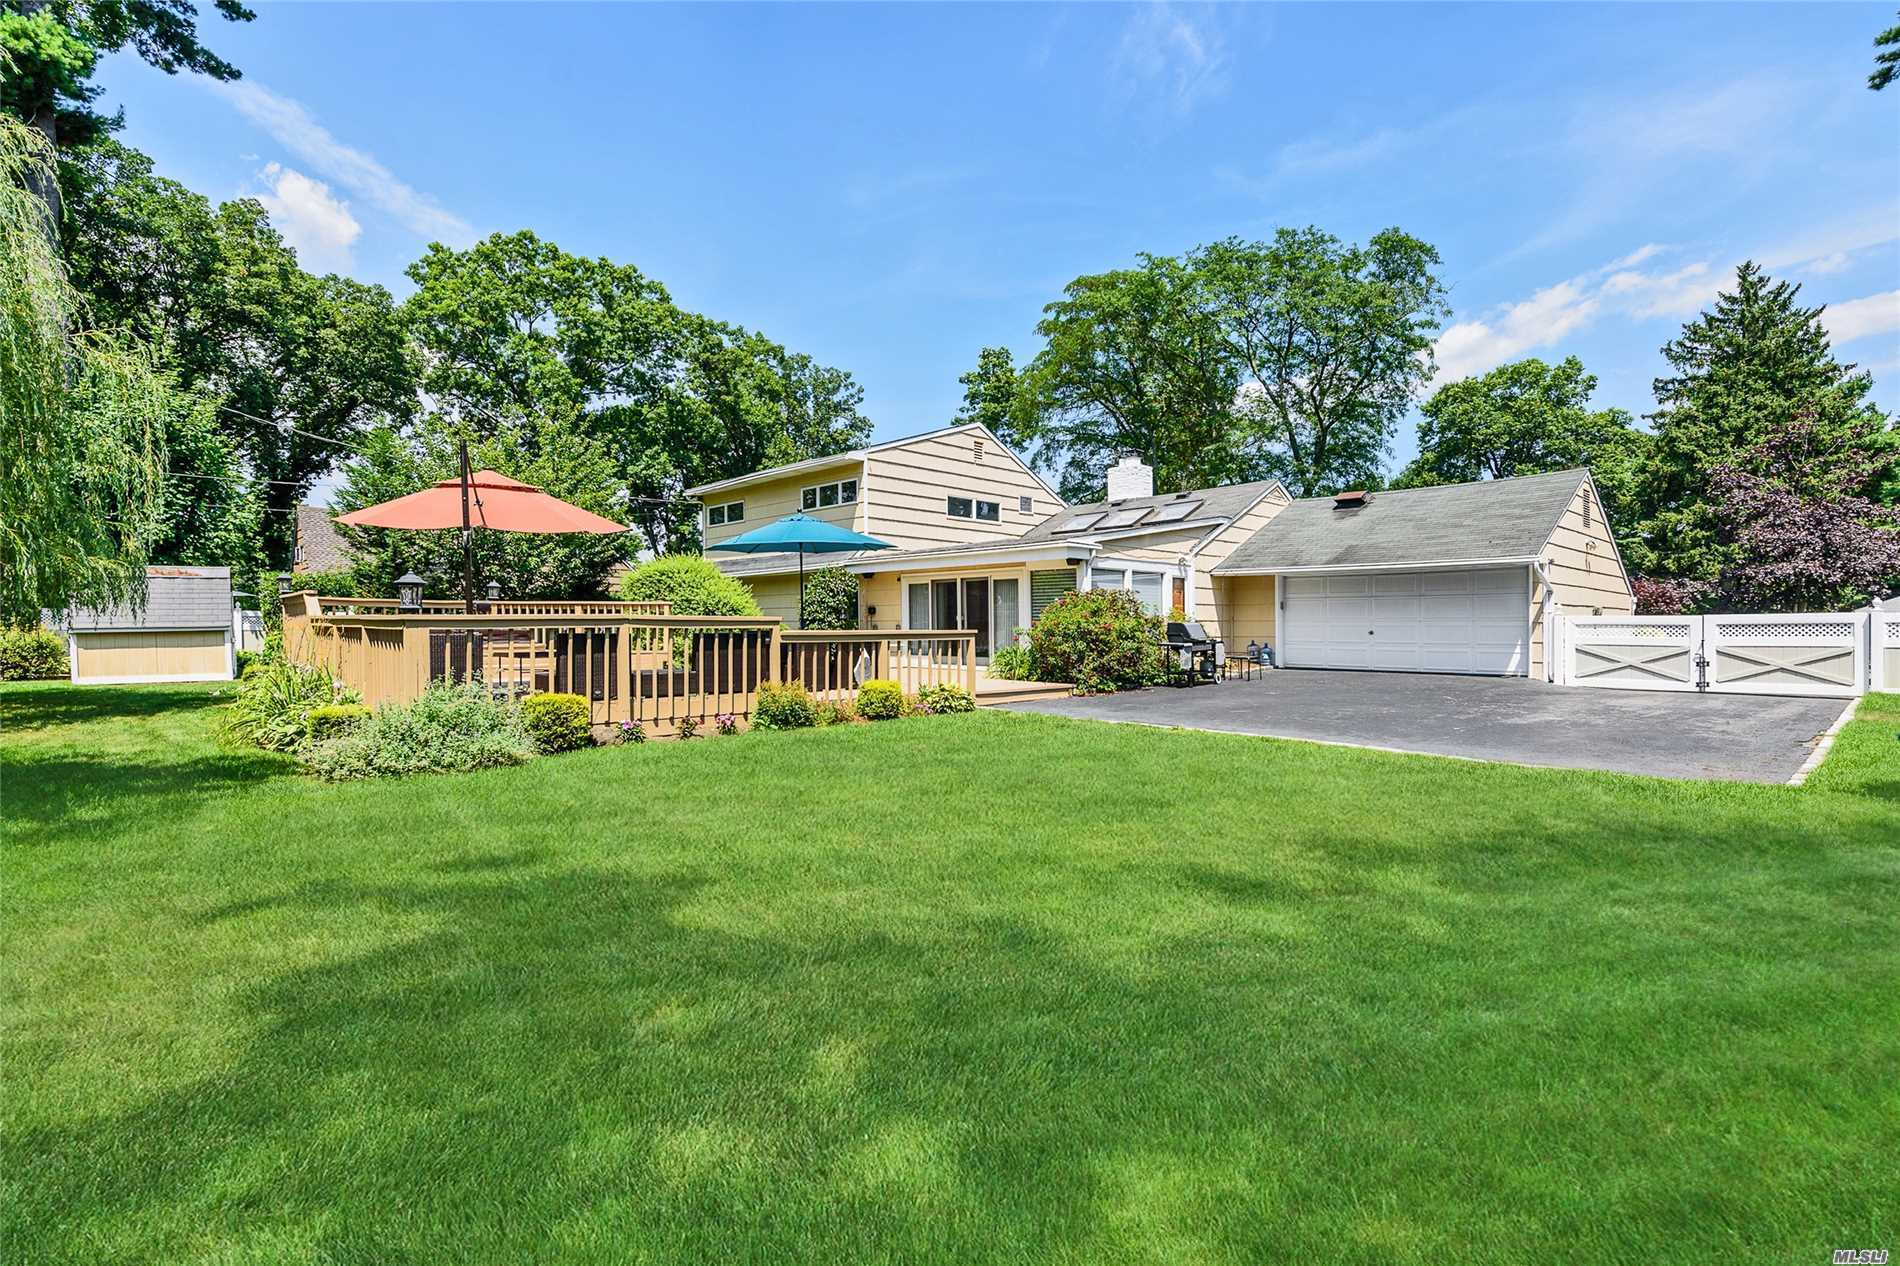 Beautiful, Move In Country Club Expanded Ranch. Entry Hall, Glass Walled Great Room With Fireplace Overlooking Manicured Lush Property With Large Deck And Hot Tub Spa, Formal Dining Room, Gourmet Granite & Stainless Steel Eat-In Kitchen, Master Suite With Full Bath, Br, Fbath. Upstairs Features Two Bedrooms, Full Bath And Storage. Wheatley Schools, Low Low Taxes. A Winner.